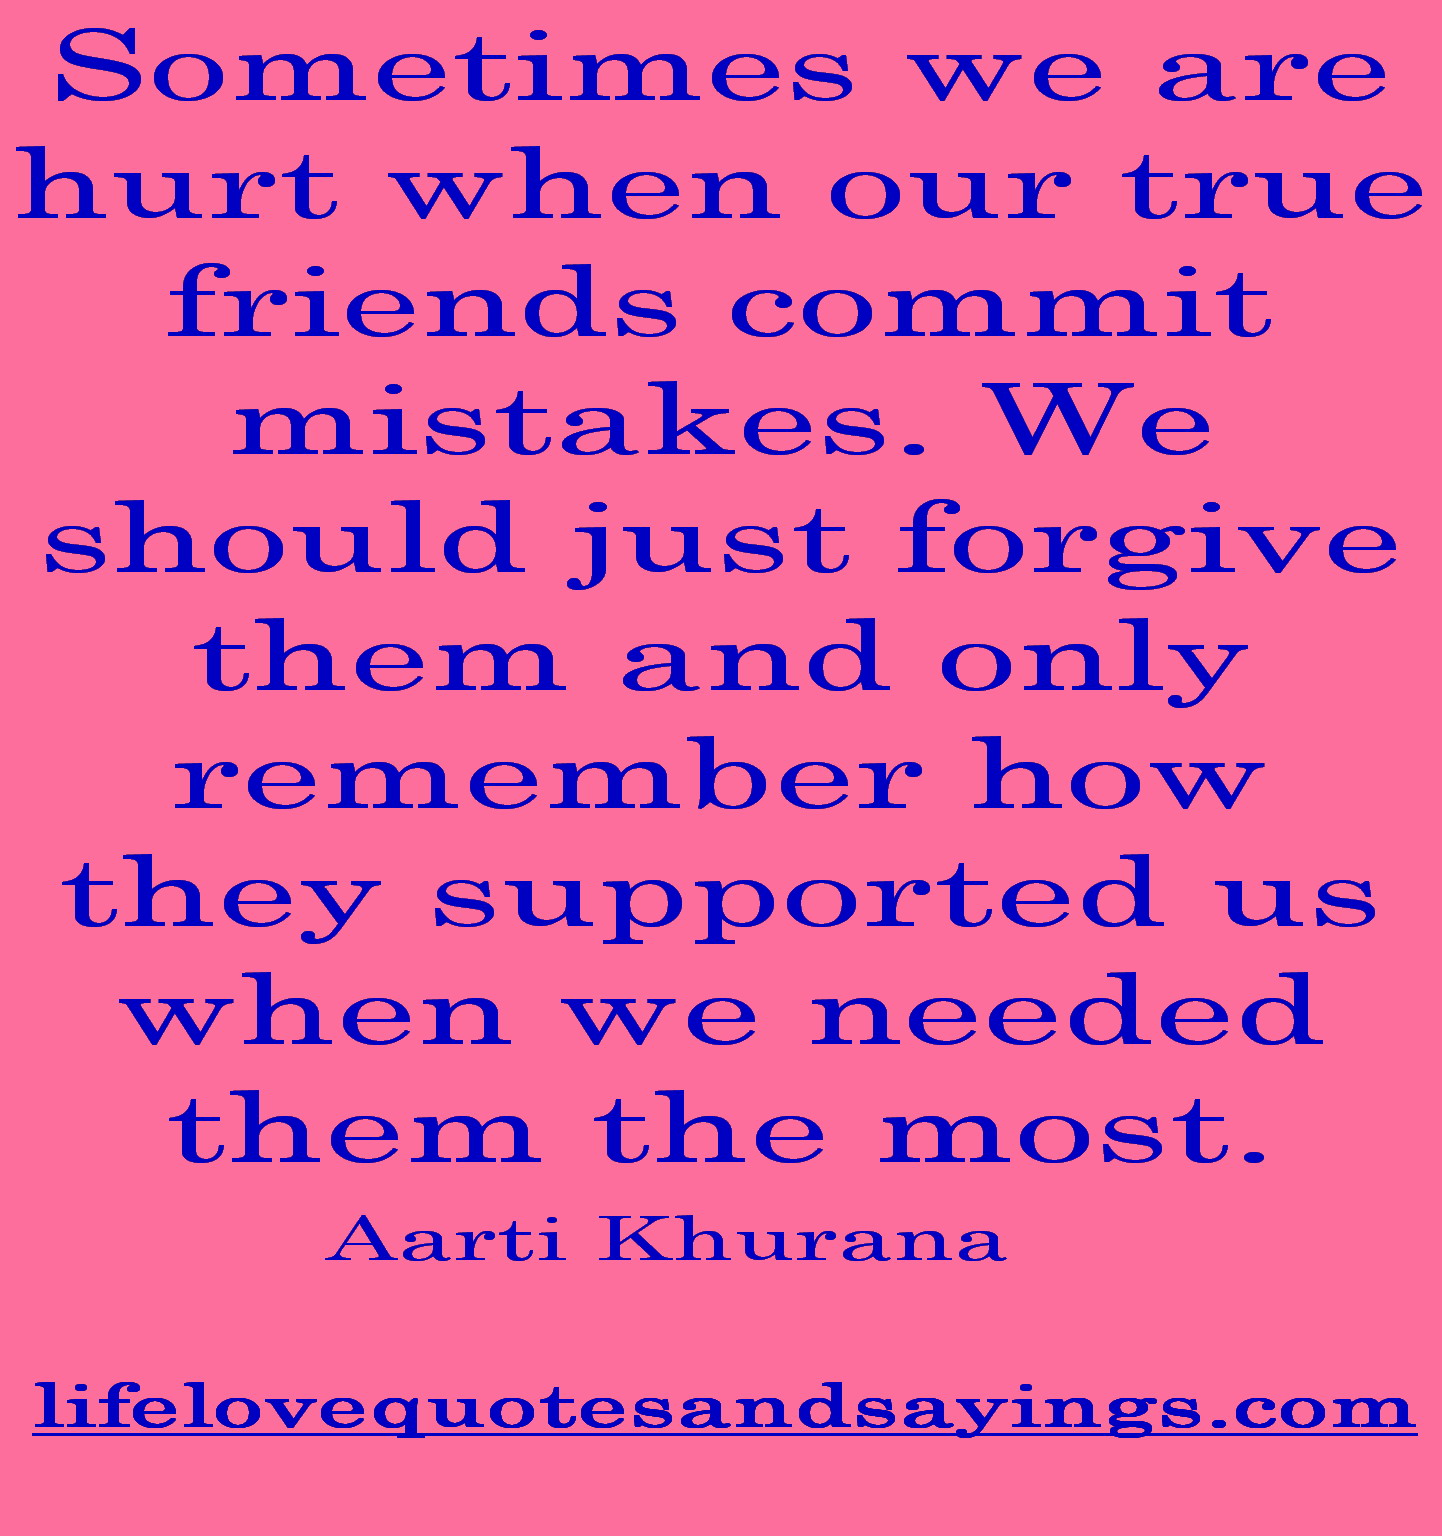 Aphorisms about friendship and betrayal of friends. It is possible and in verse